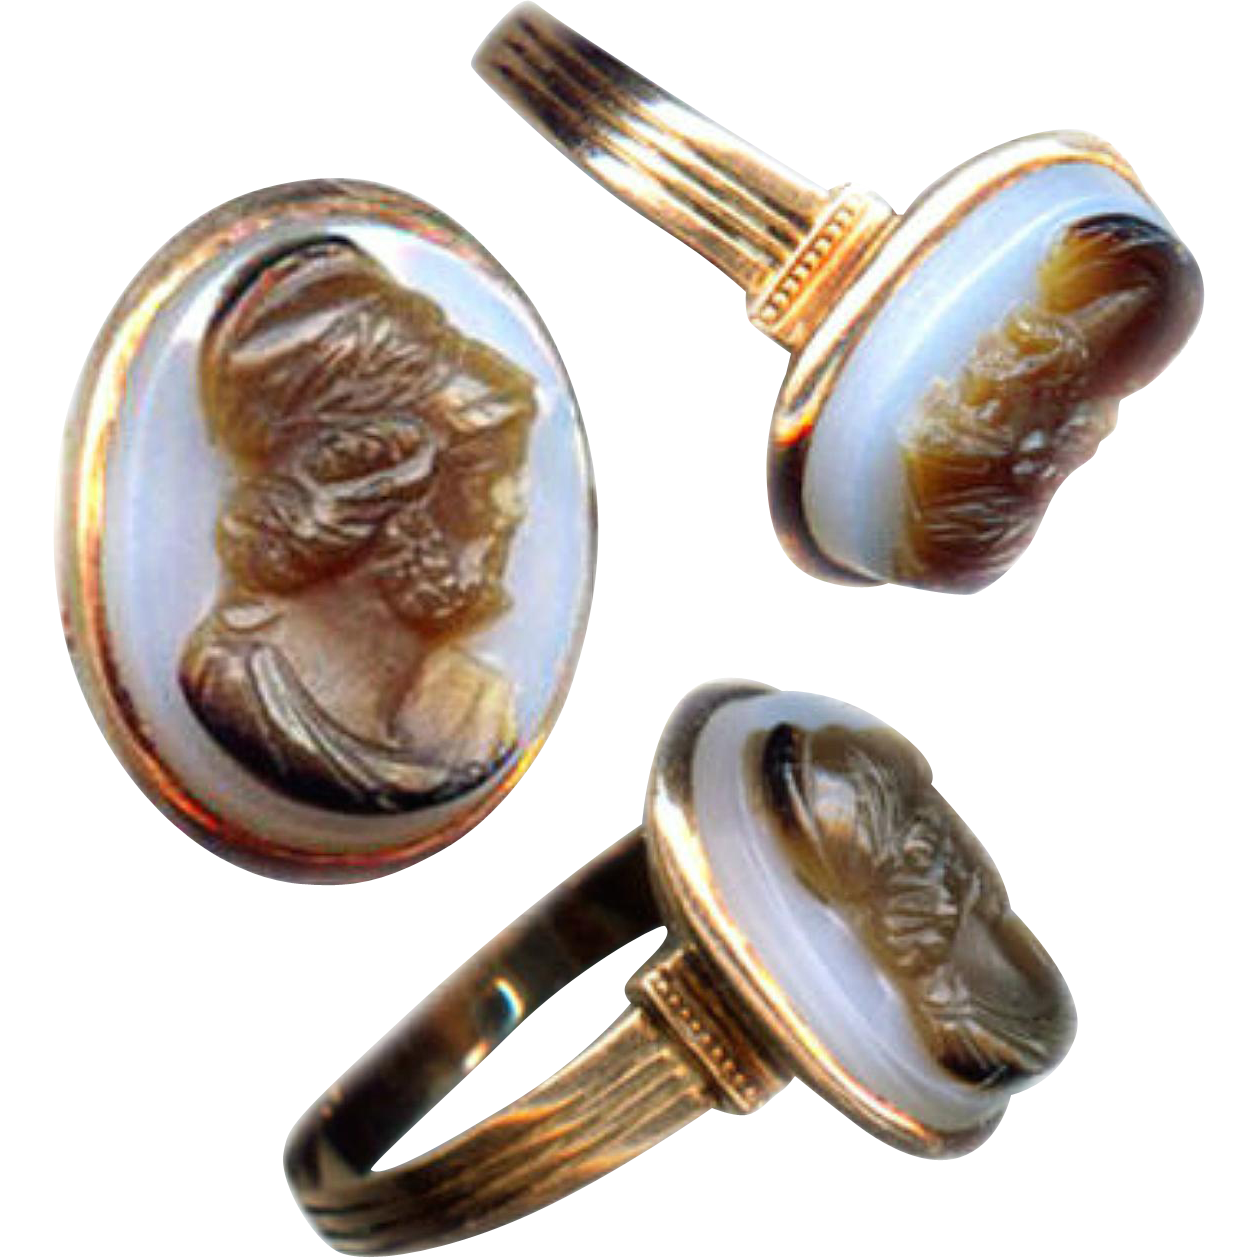 Ring--Mid-19th C. 9 Karat Pink Gold and Bluish-White to Translucent Brown Agate Cameo of Achilles (Or Someone)